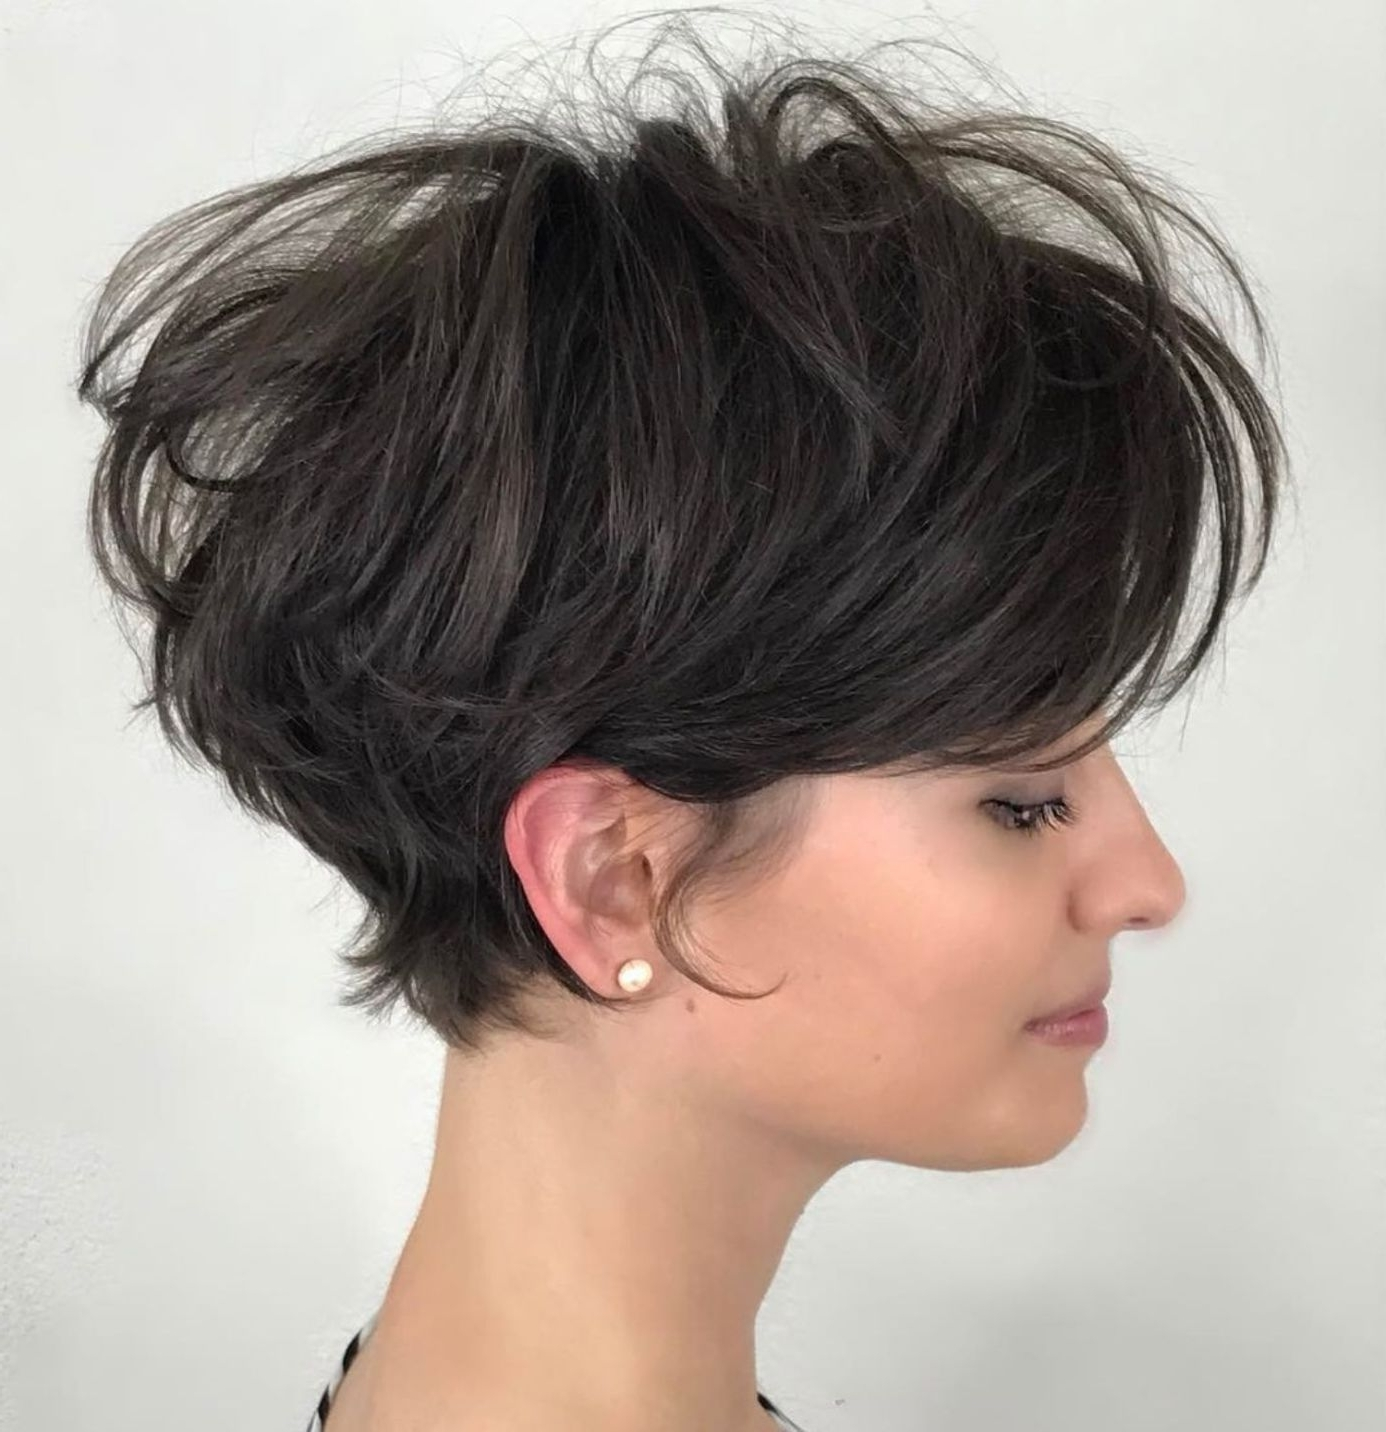 Pixie Haircuts For Thick Hair – 50 Ideas Of Ideal Short Haircuts In Well Known Platinum Blonde Disheveled Pixie Hairstyles (View 13 of 20)